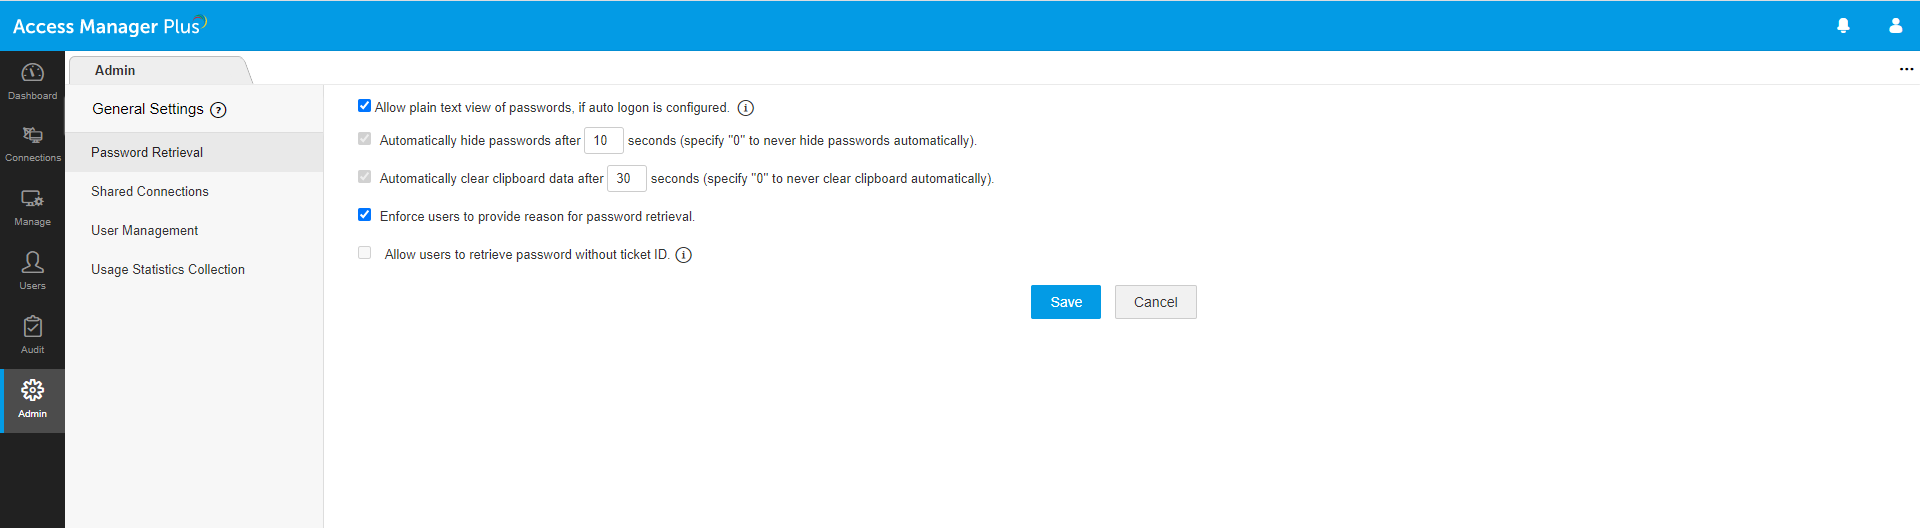 password retrieval restrictions in Access Manager Plus